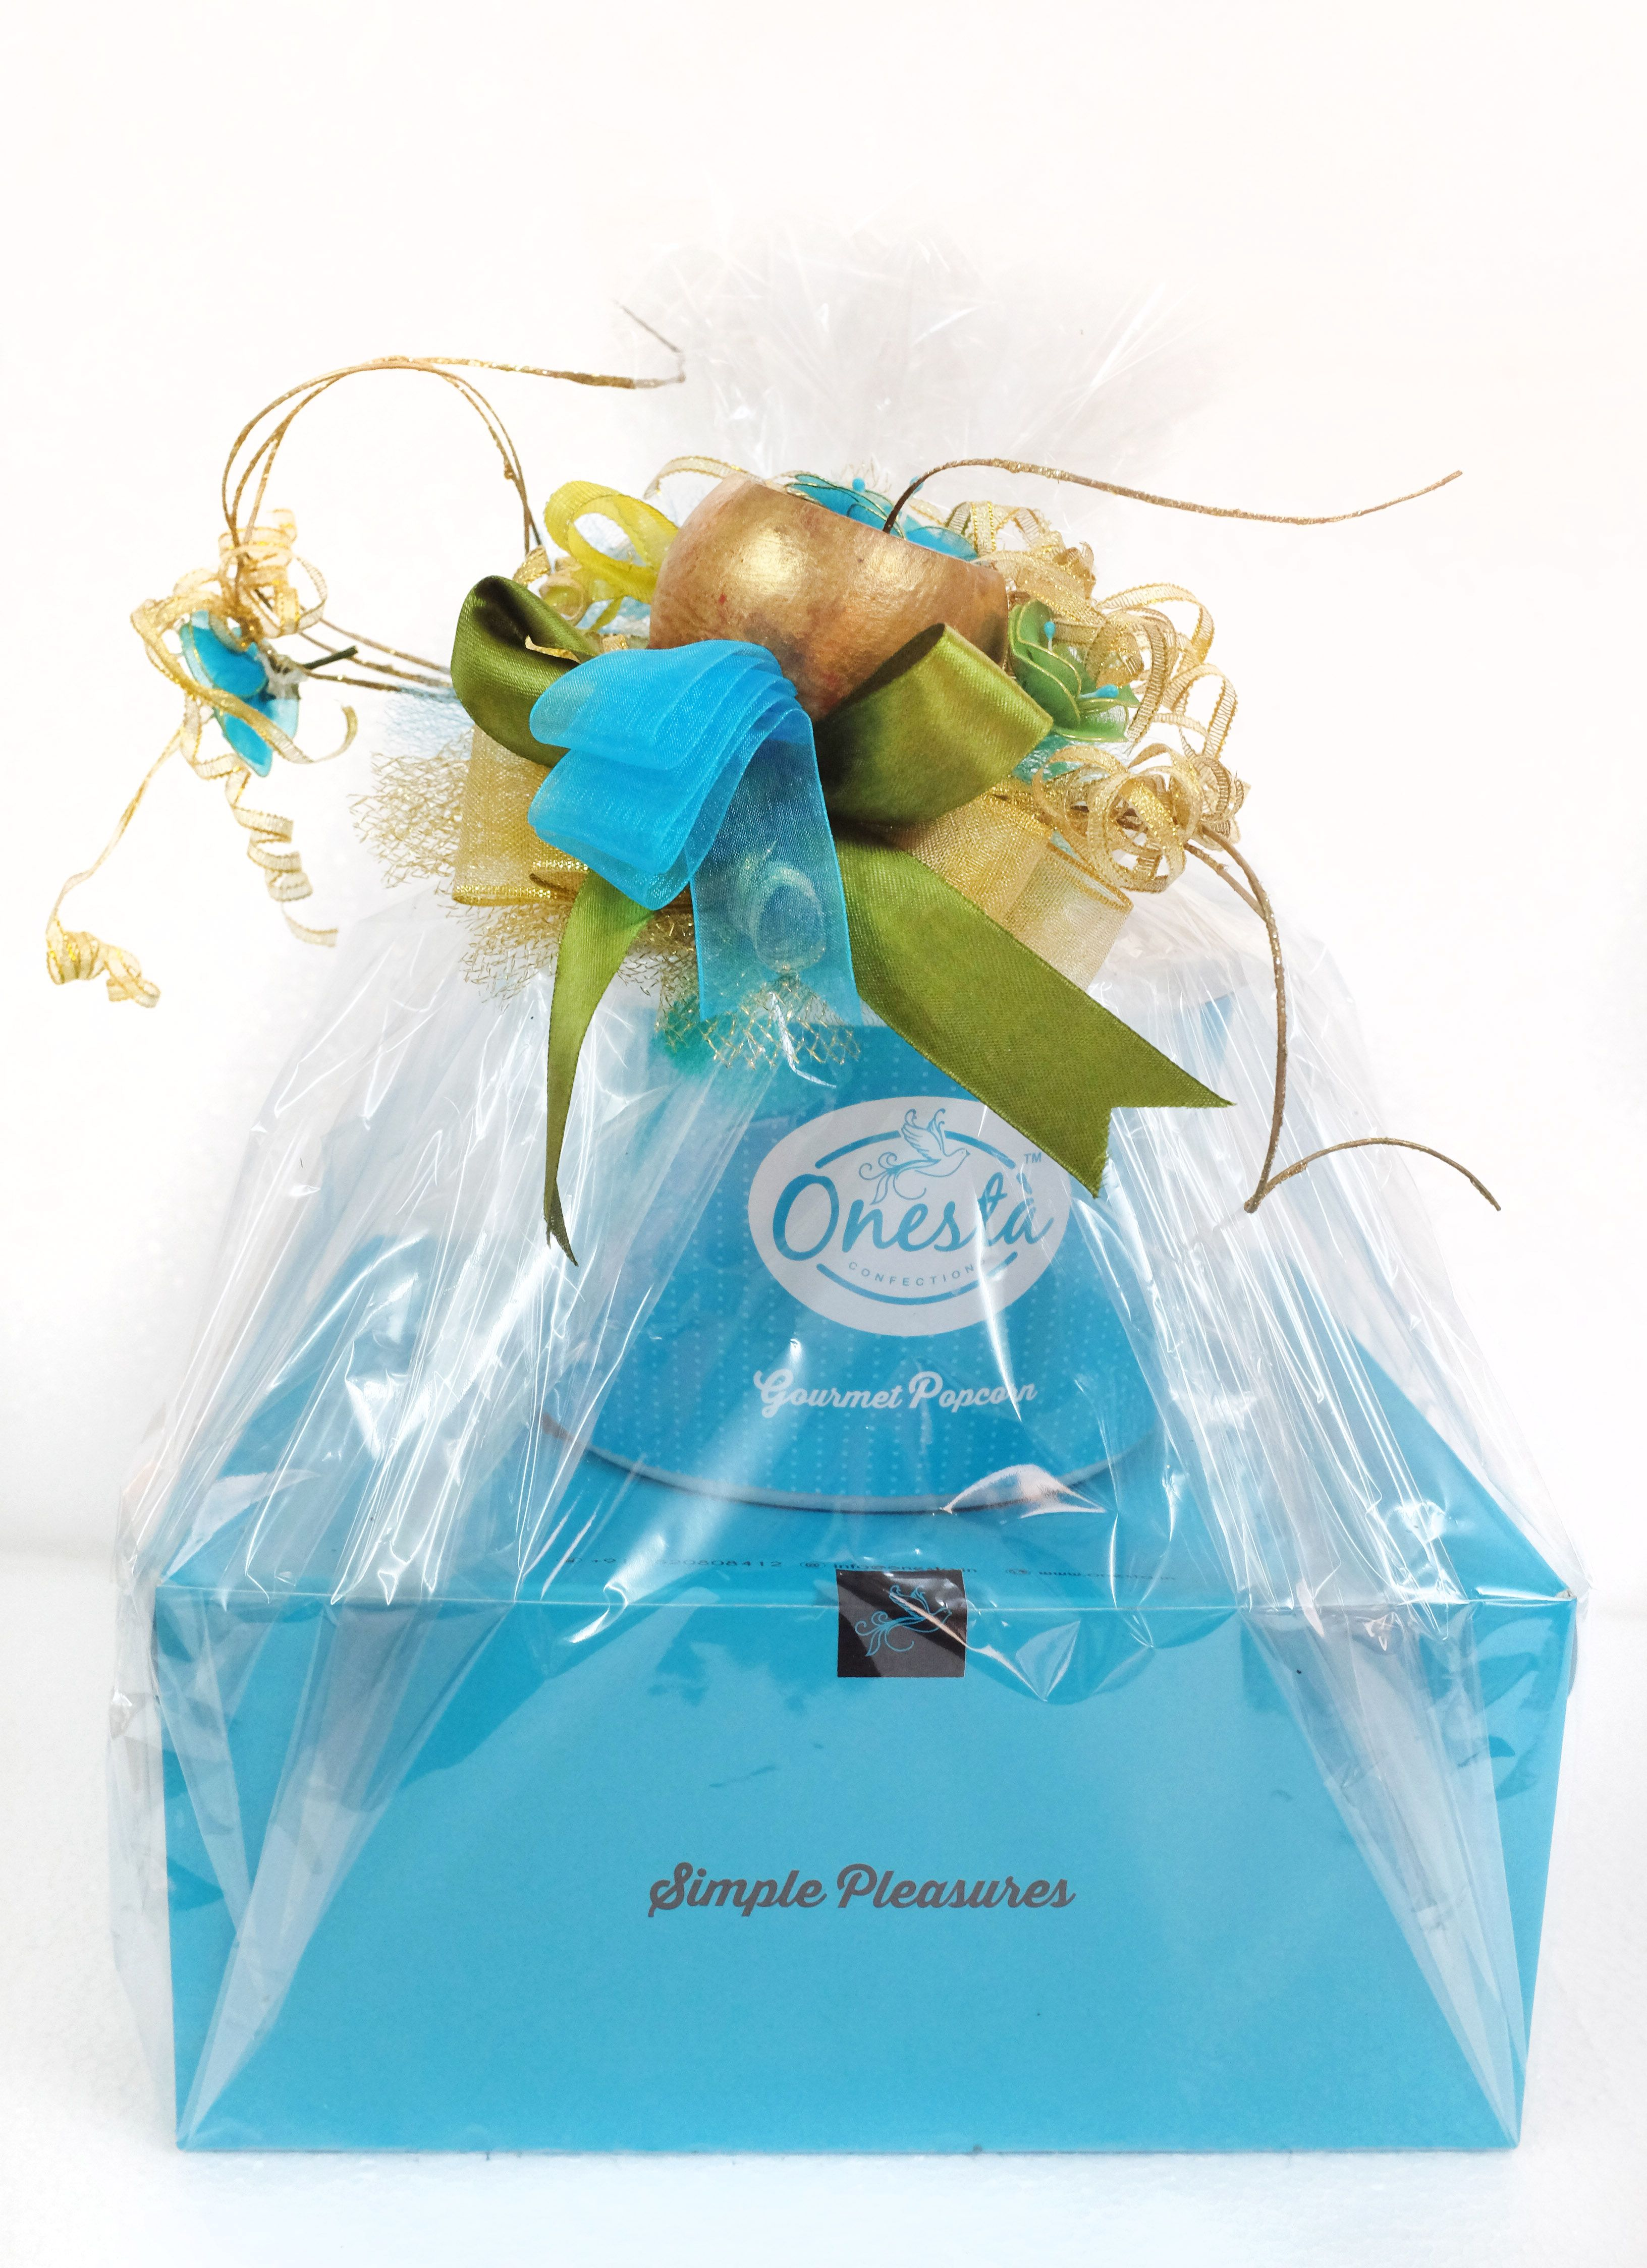 Gift Hamper Gift hampers, Customized gifts, Gifts